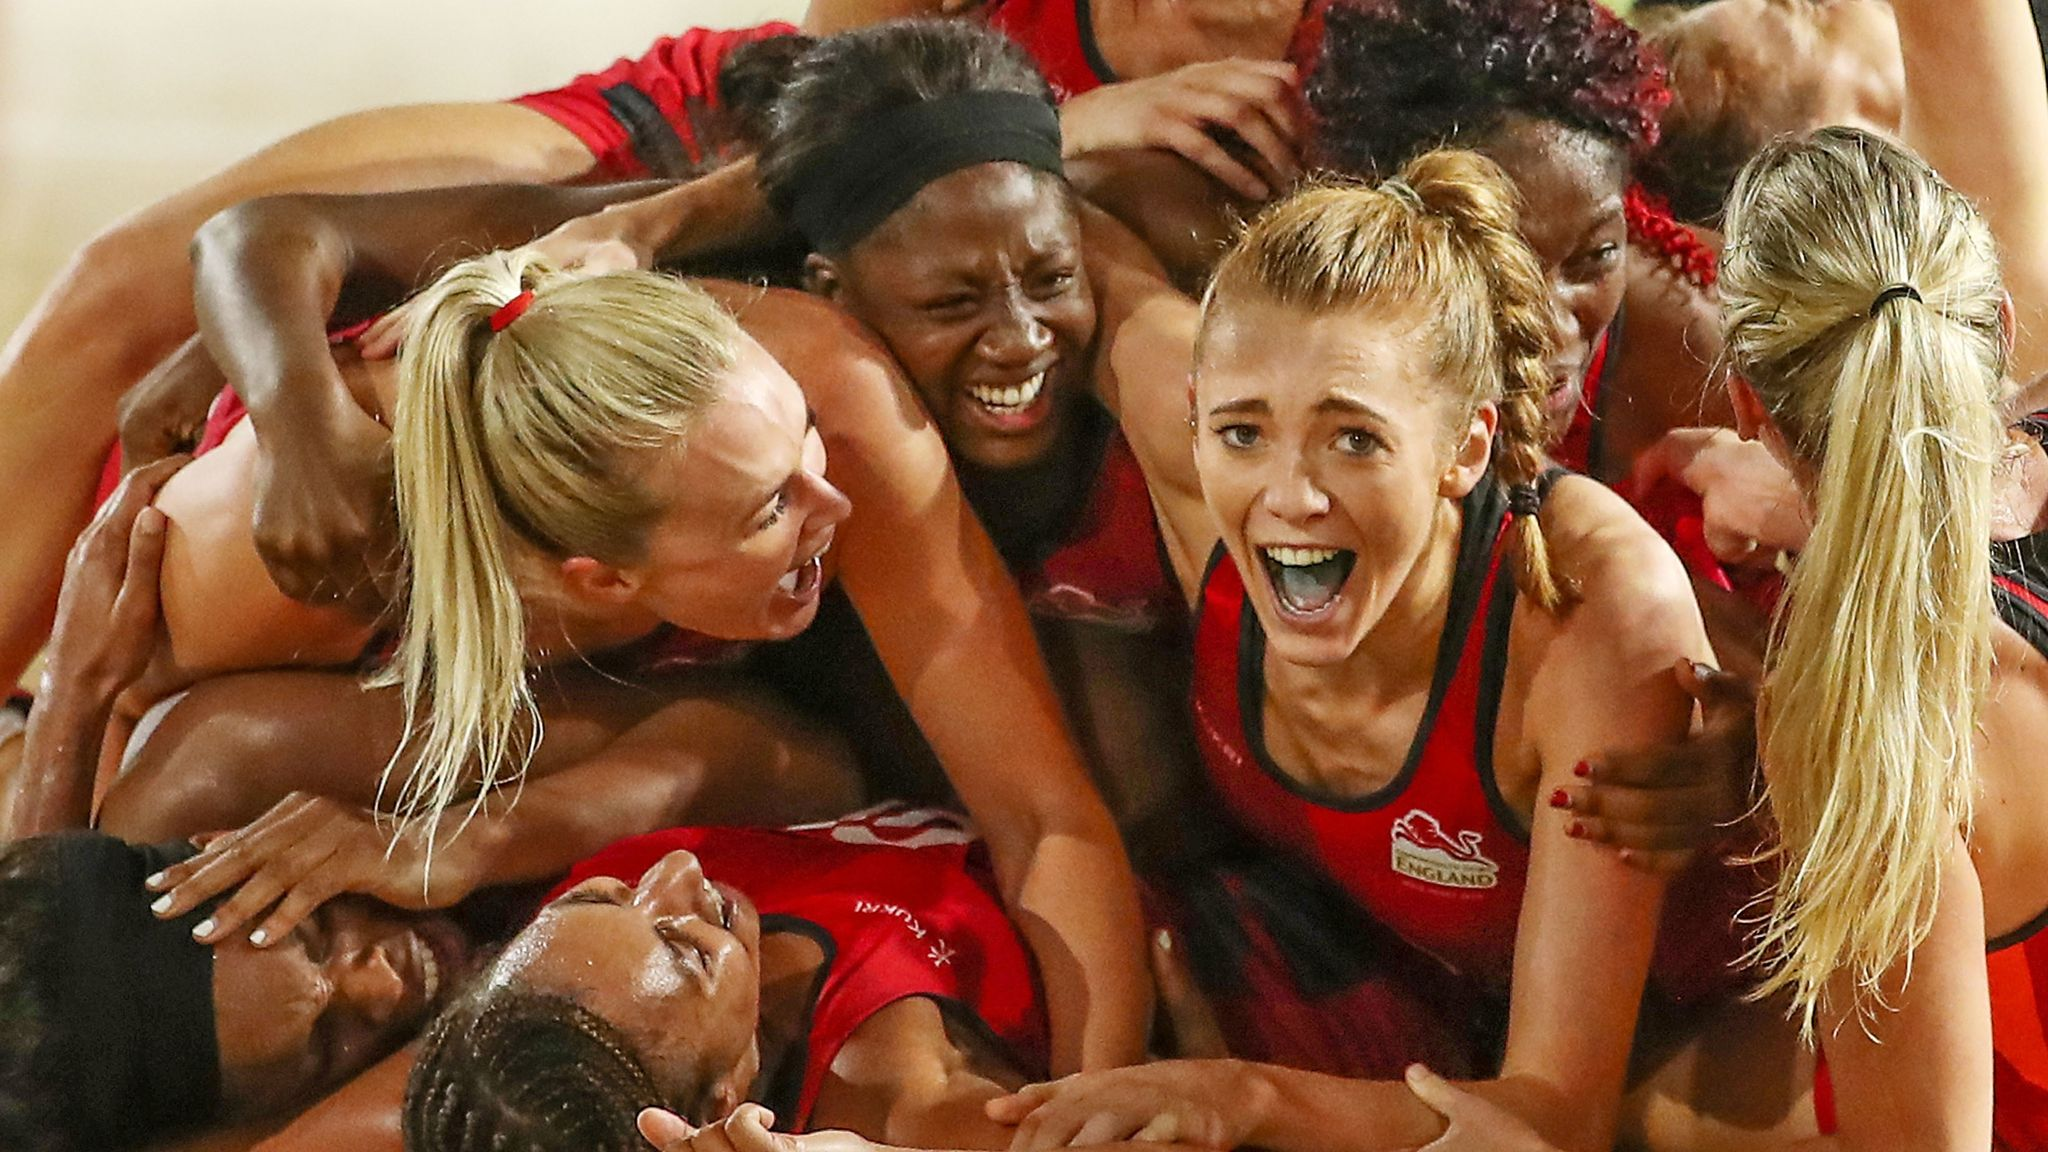 England Netball's new CEO Fran Connolly wants netball to trail-blaze in women's sport